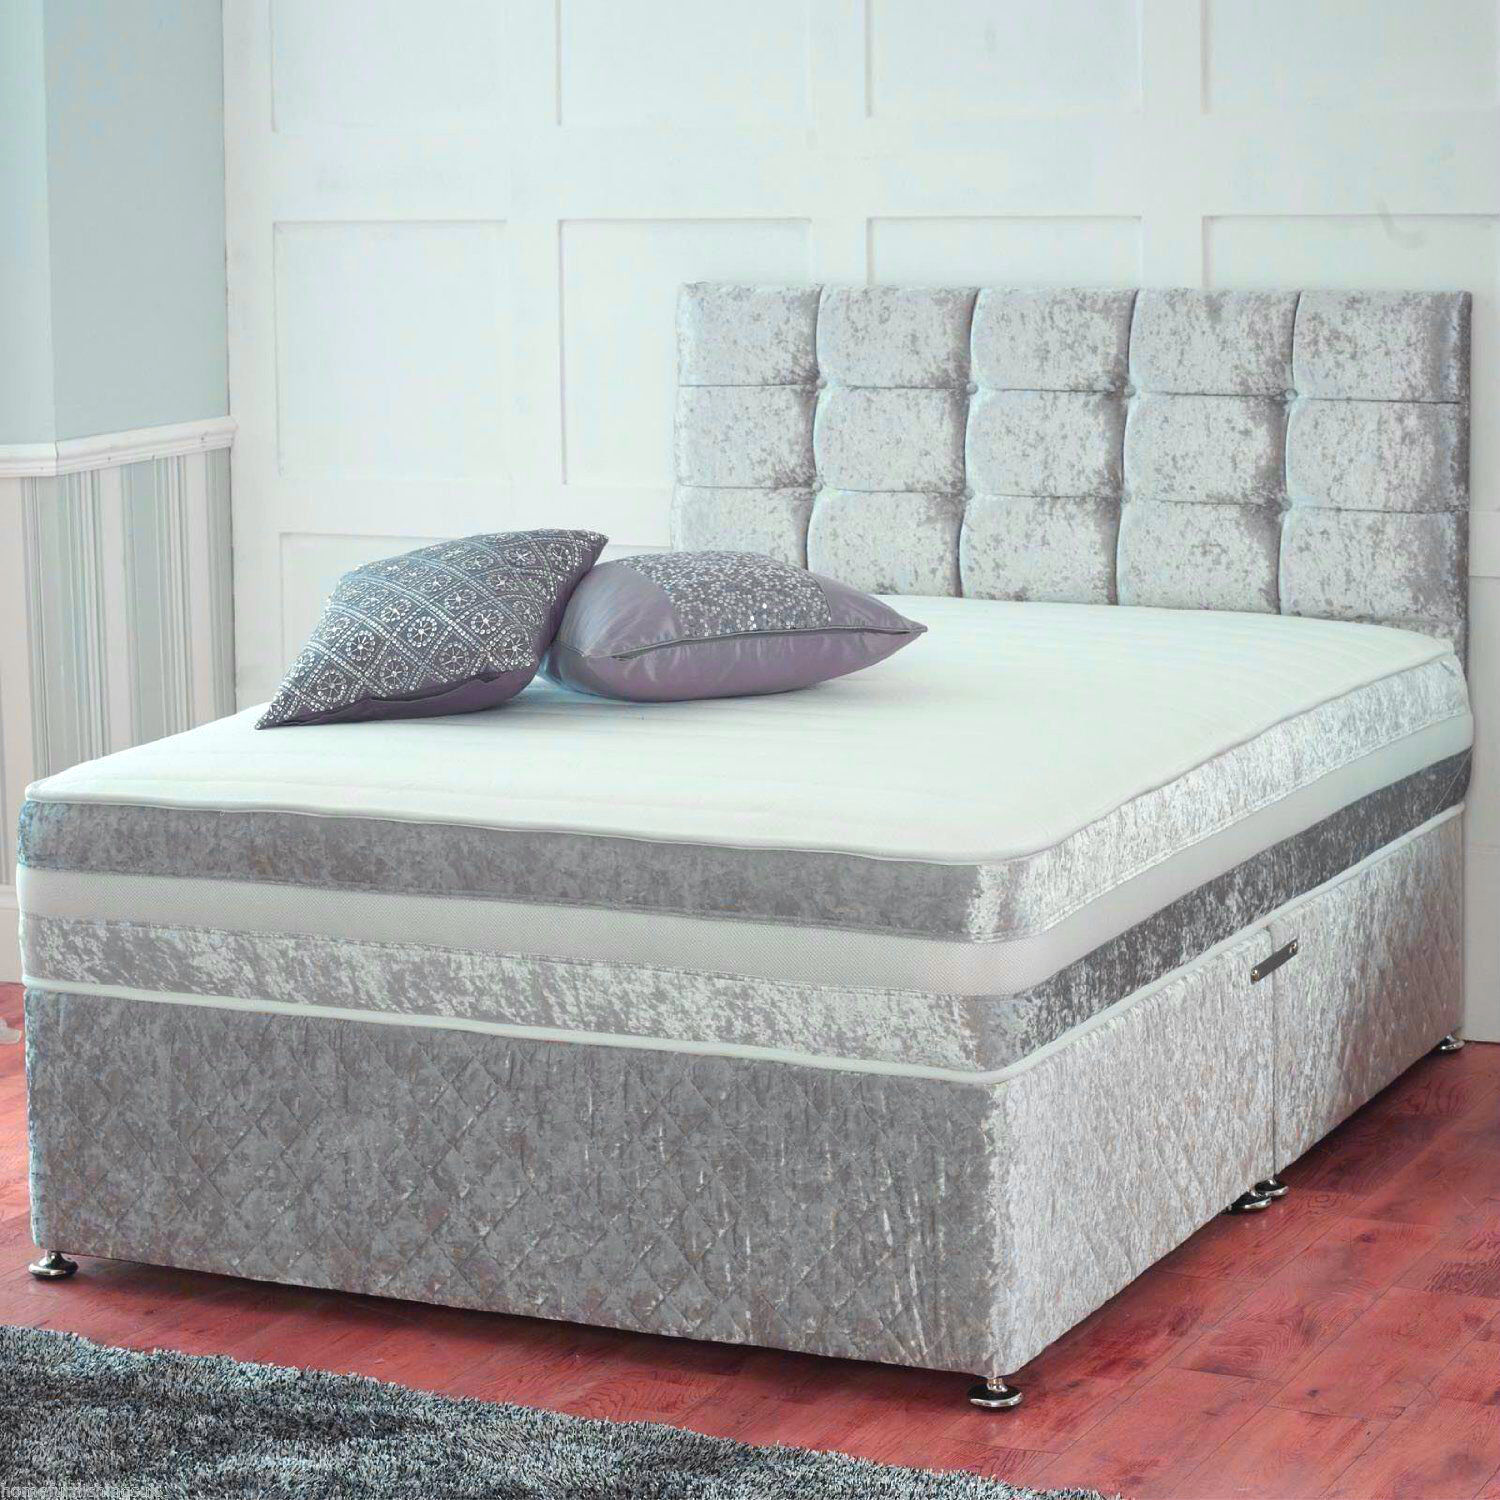 CRUSHED VELVET DIVAN BED WITH UNDER BED STORAGE   ORTHOPEDIC MATTRESS ALL  SIZES. CRUSHED VELVET DIVAN BED WITH UNDER BED STORAGE   ORTHOPEDIC